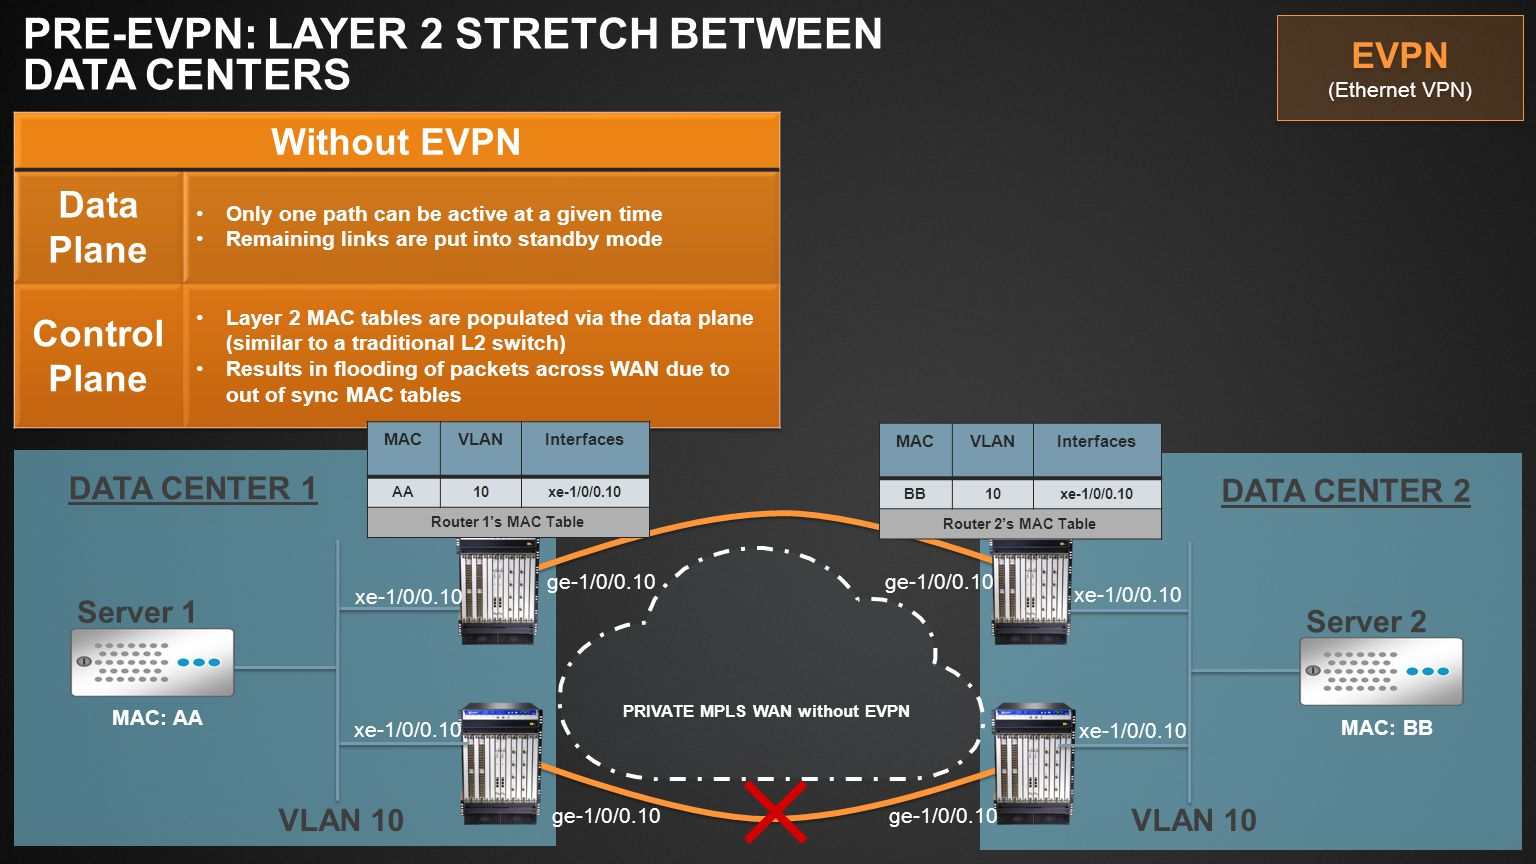 PRIVATE MPLS WAN without EVPN